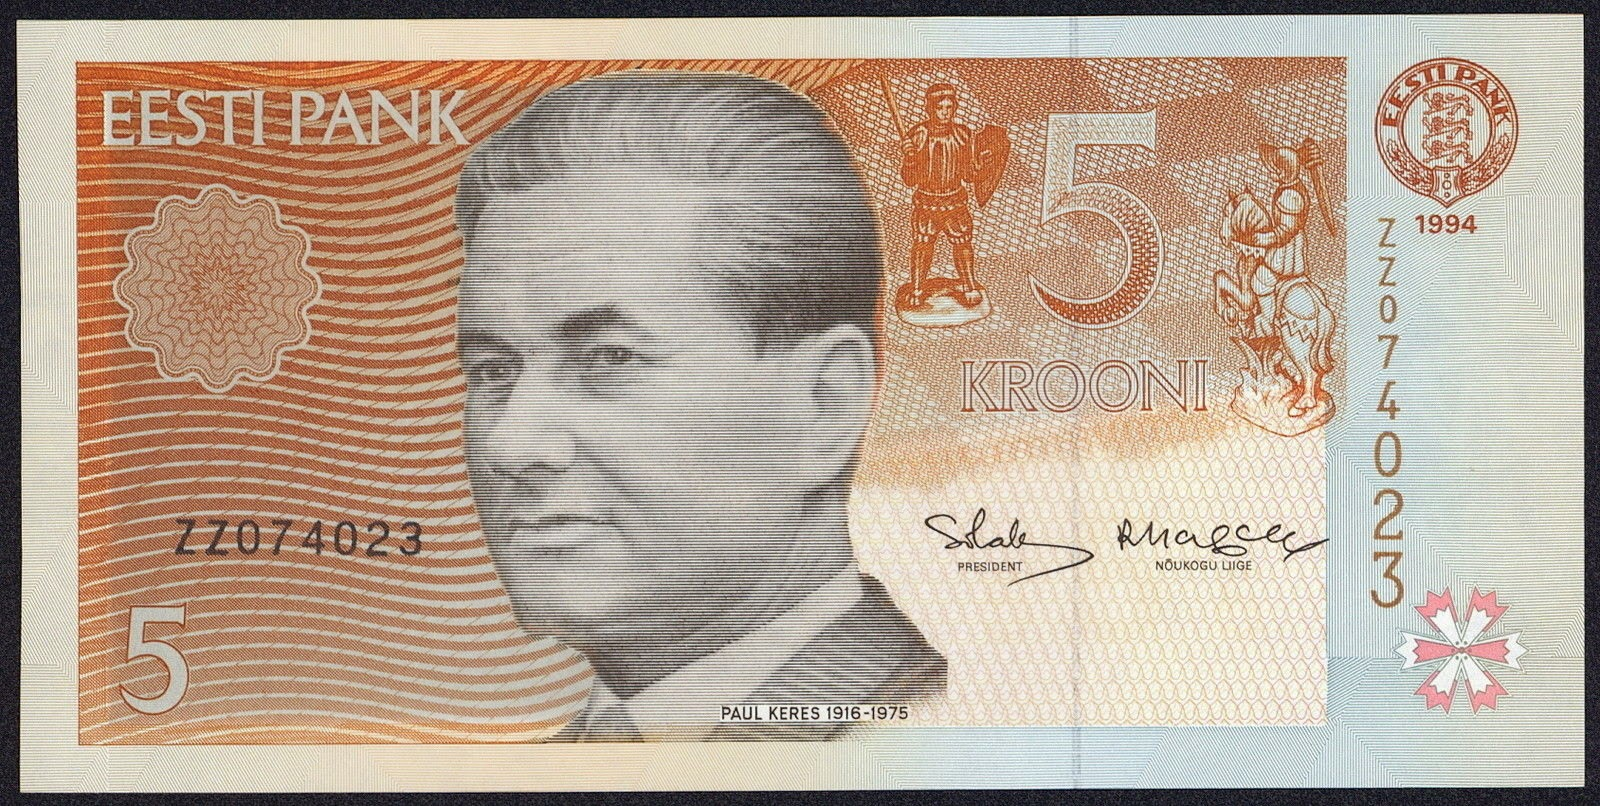 Estonia currency money 5 krooni banknote, Paul Keres